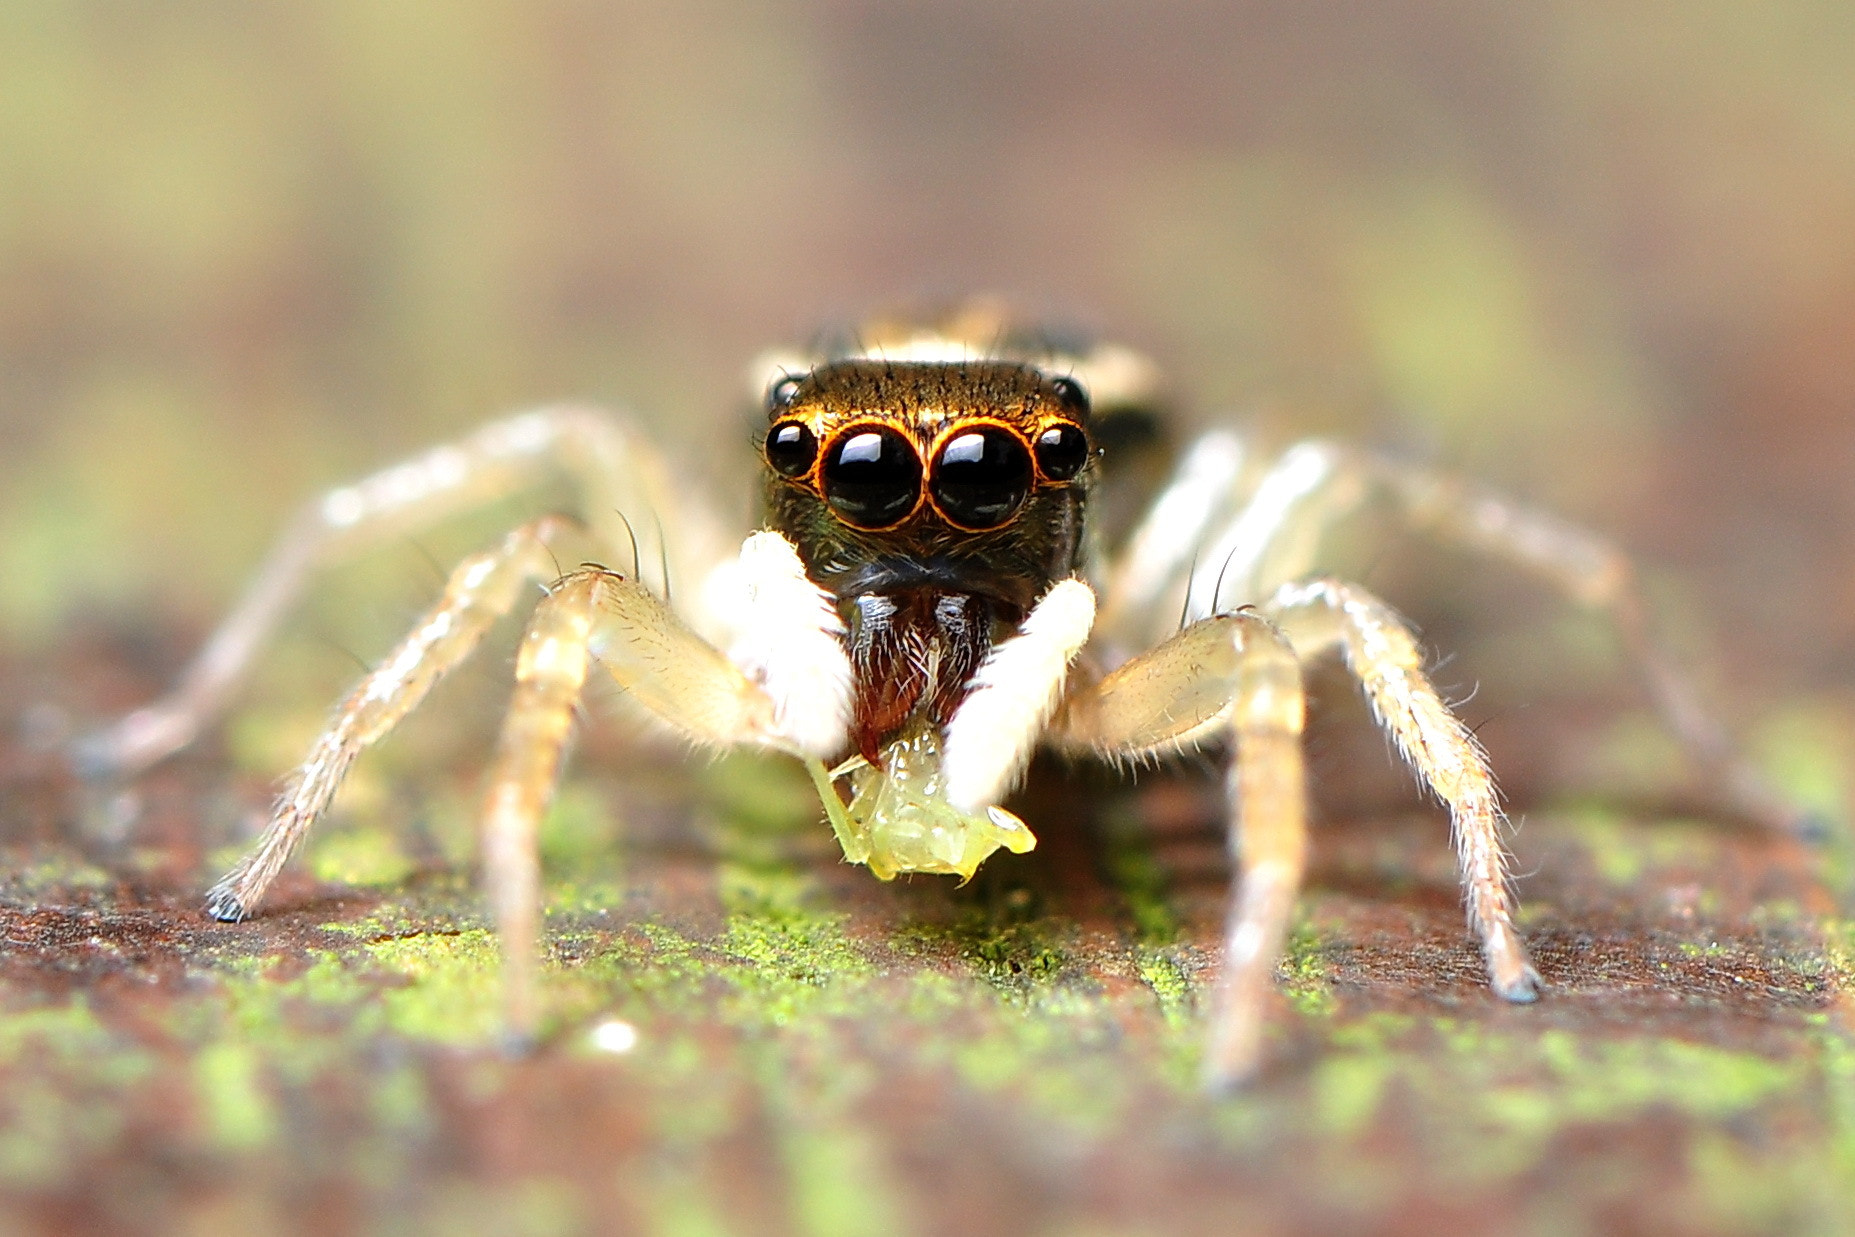 Photograph Jumping Spider by chen kuntsan on 500px